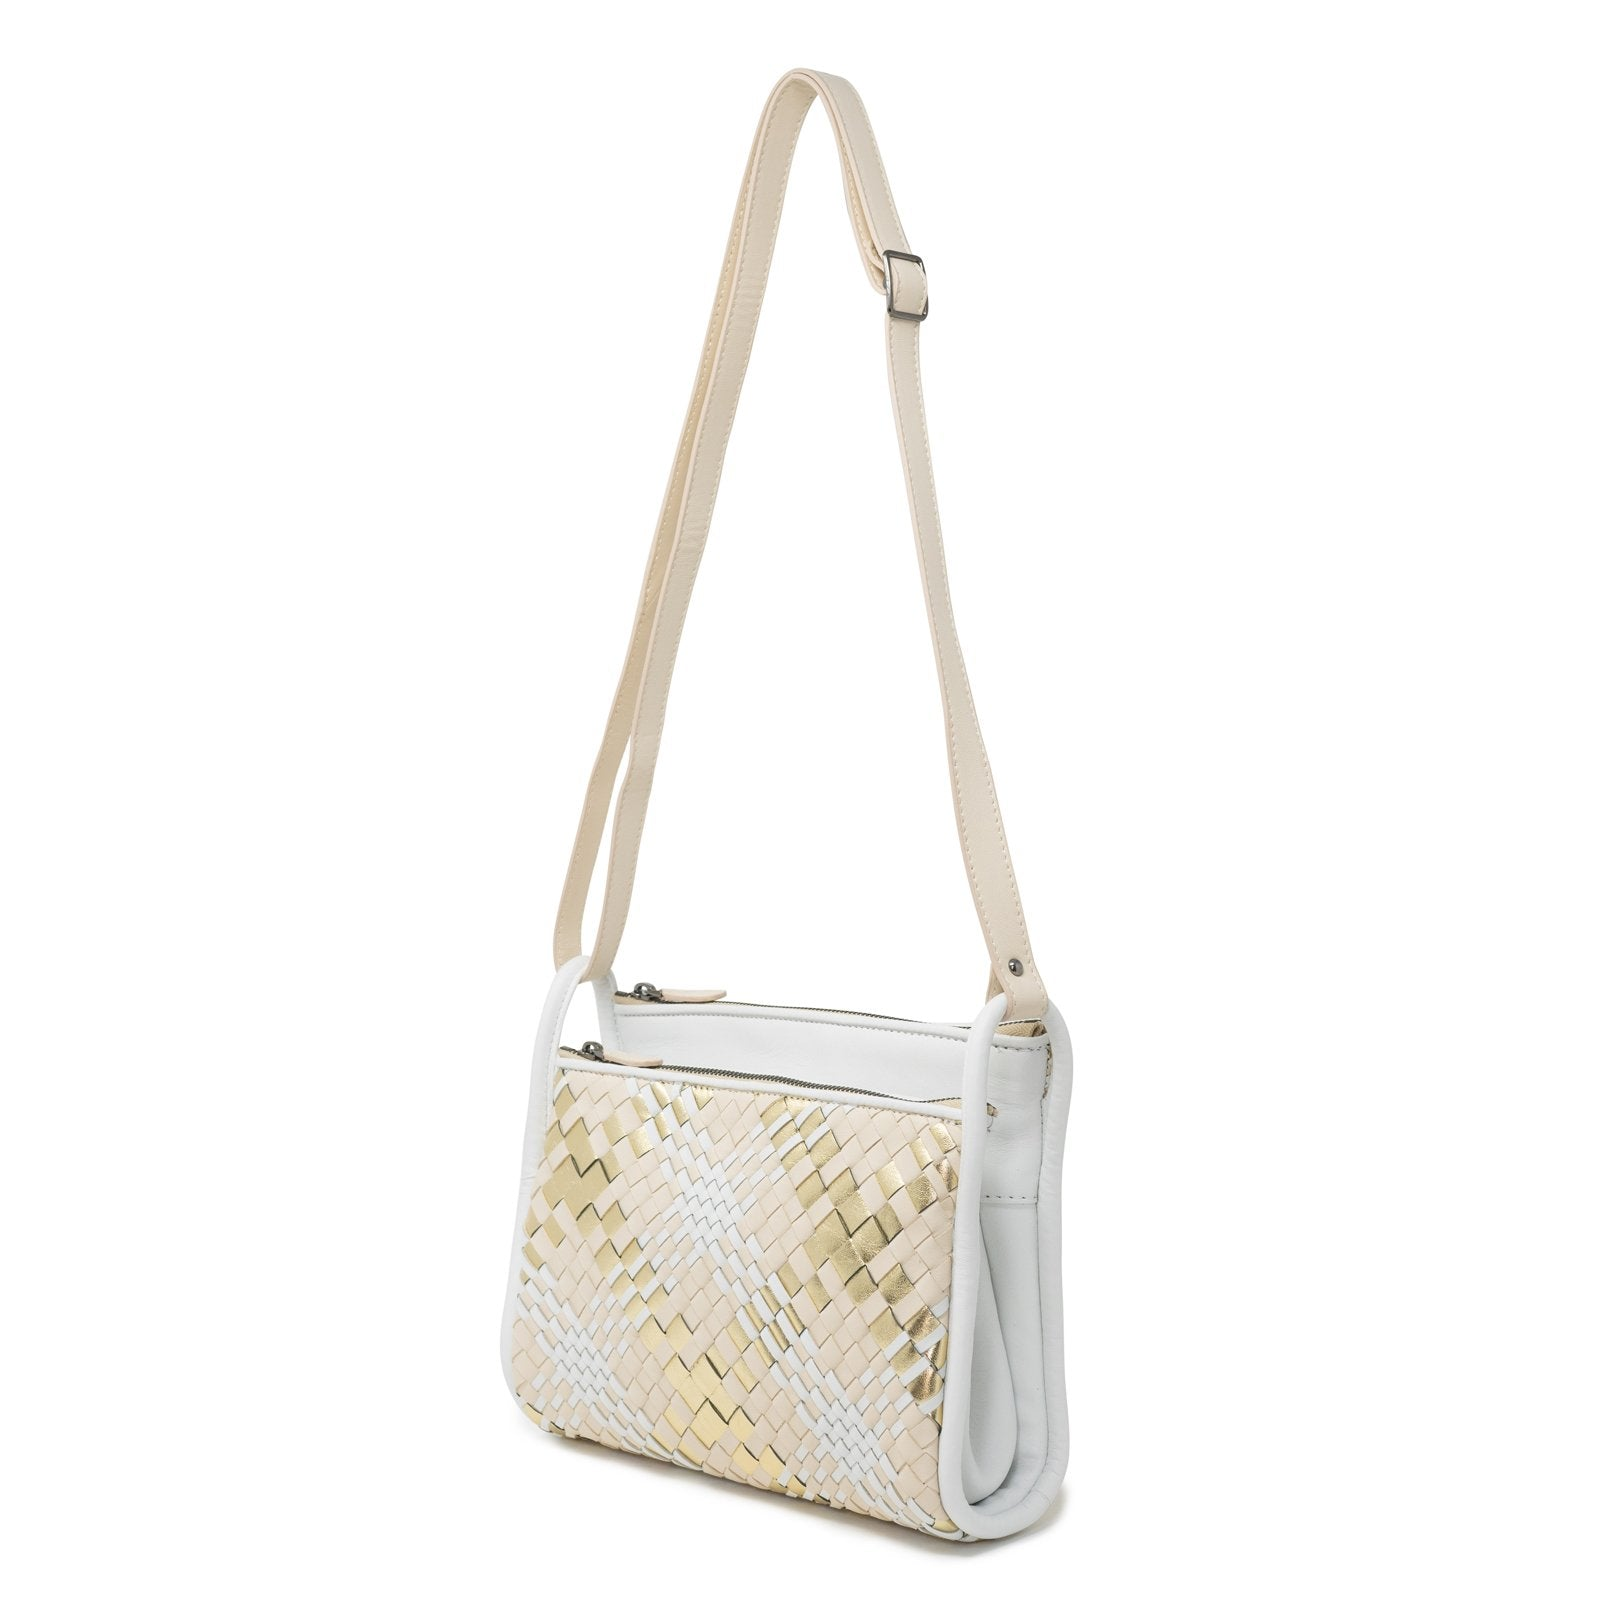 JT334 5557 Intrecciato Scozzese Leather Shoulder Bag in Nappa Beige - Jennifer Tattanelli